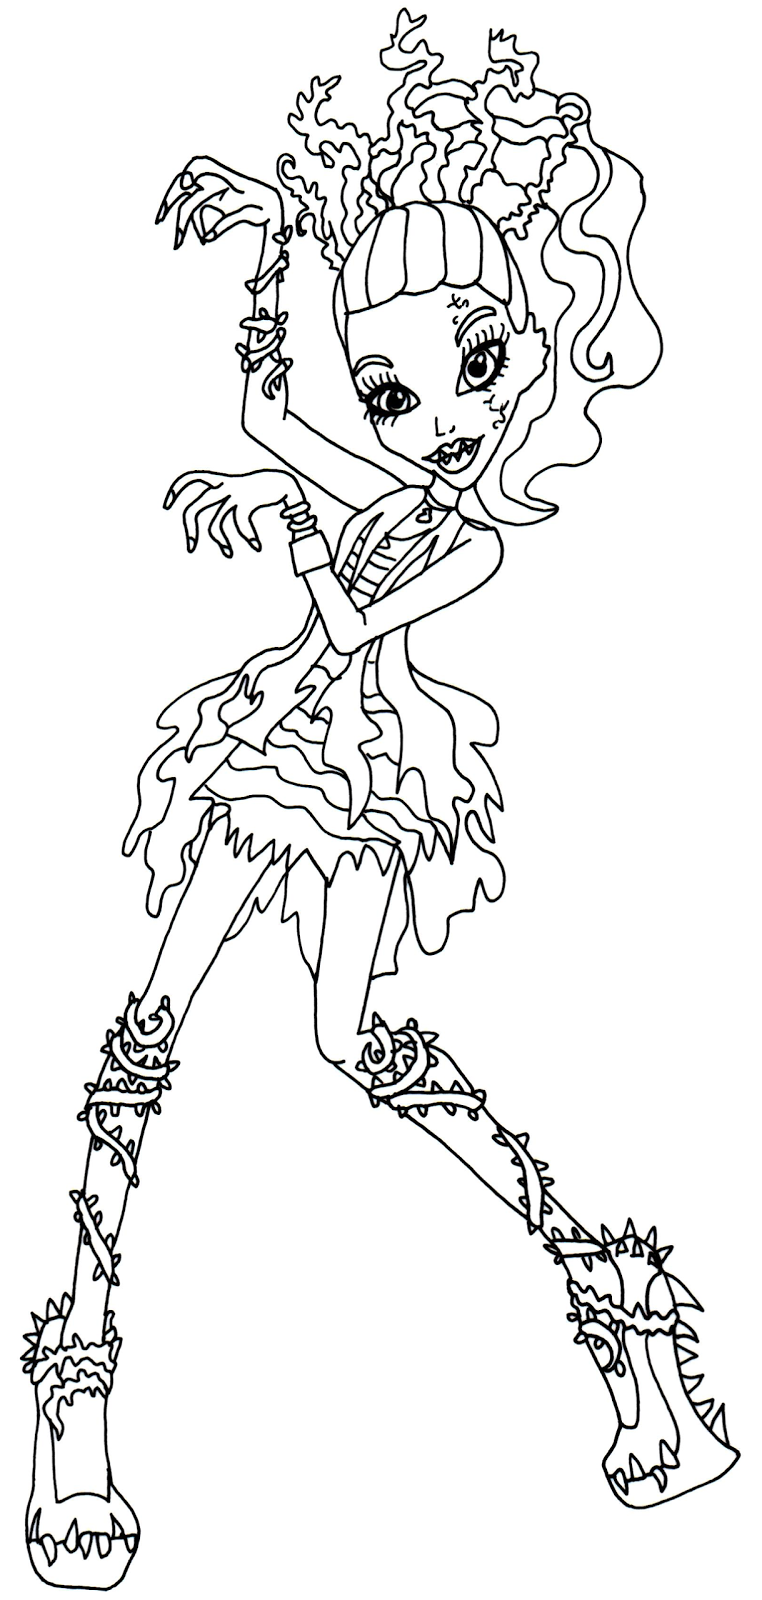 Free Printable Monster High Coloring Pages: Venus